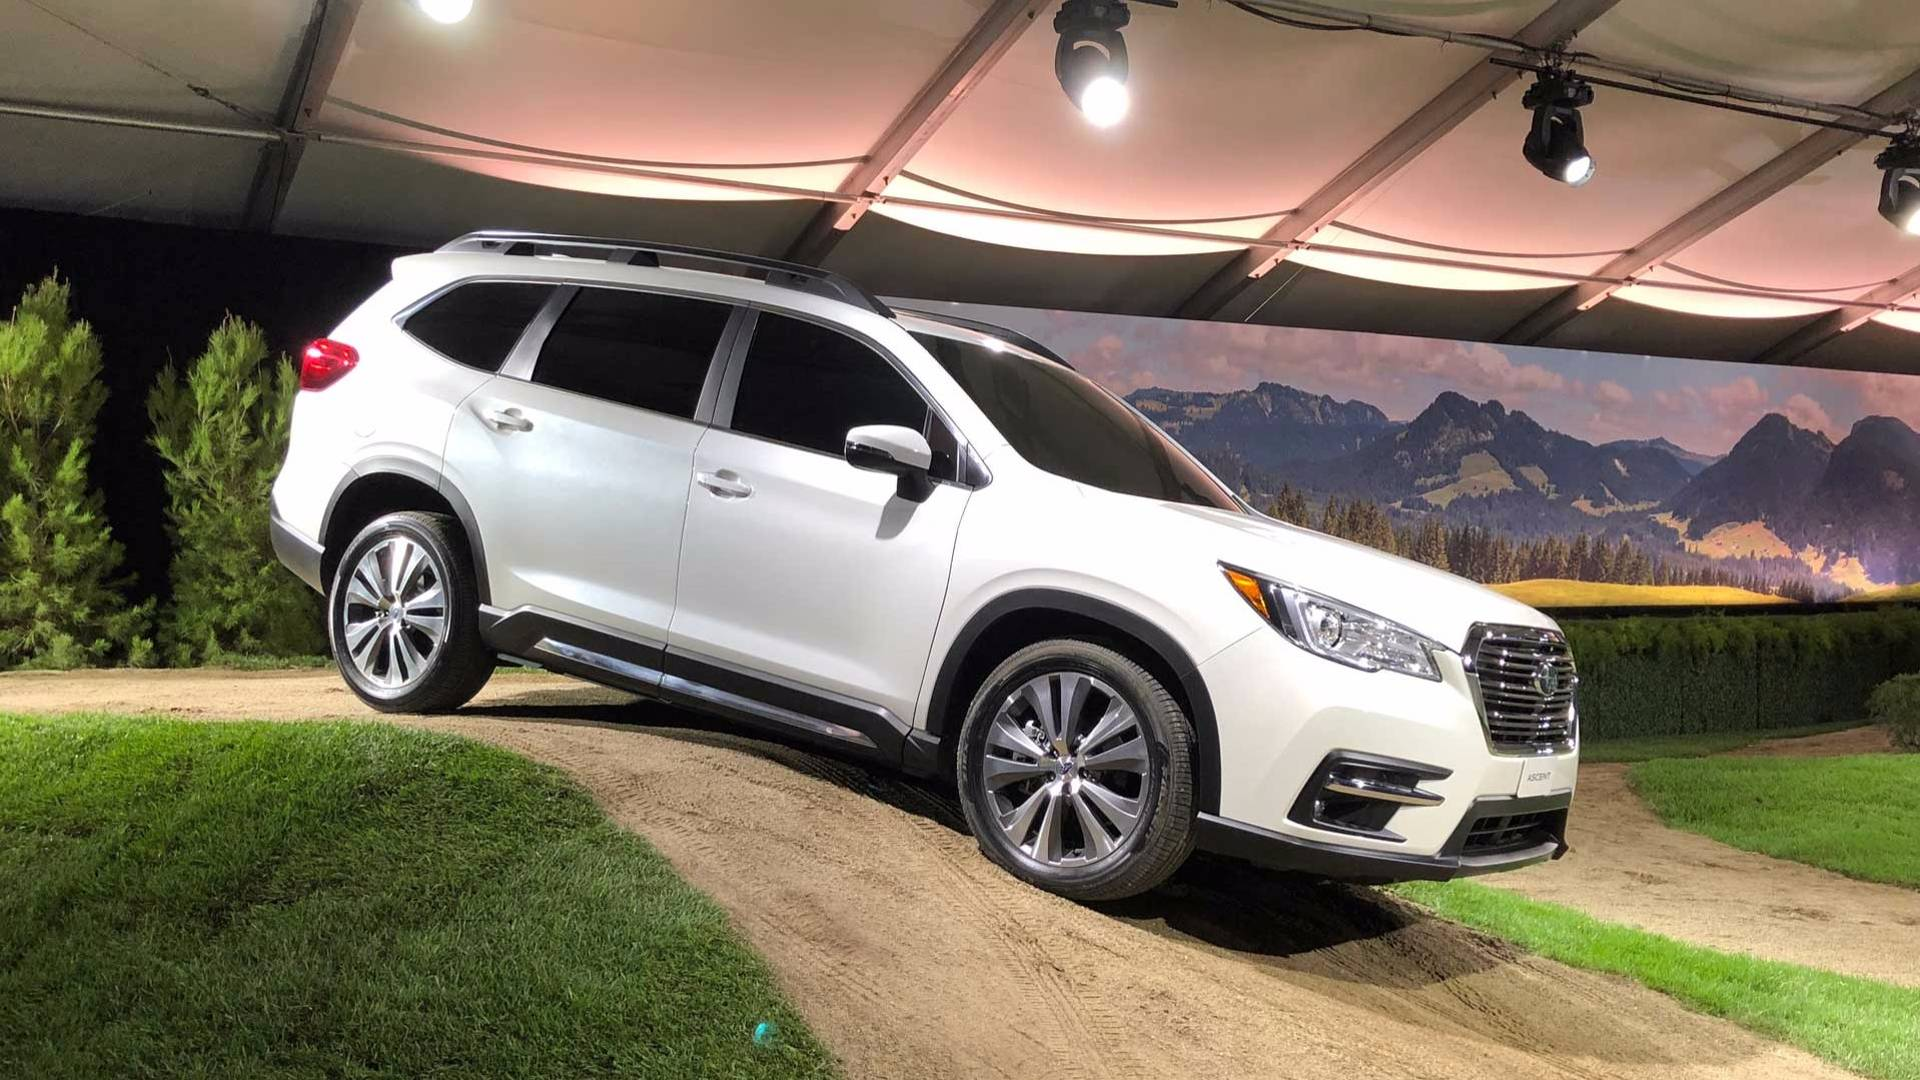 2019 Subaru Ascent Arrives With New Turbo Engine, Seating For 8